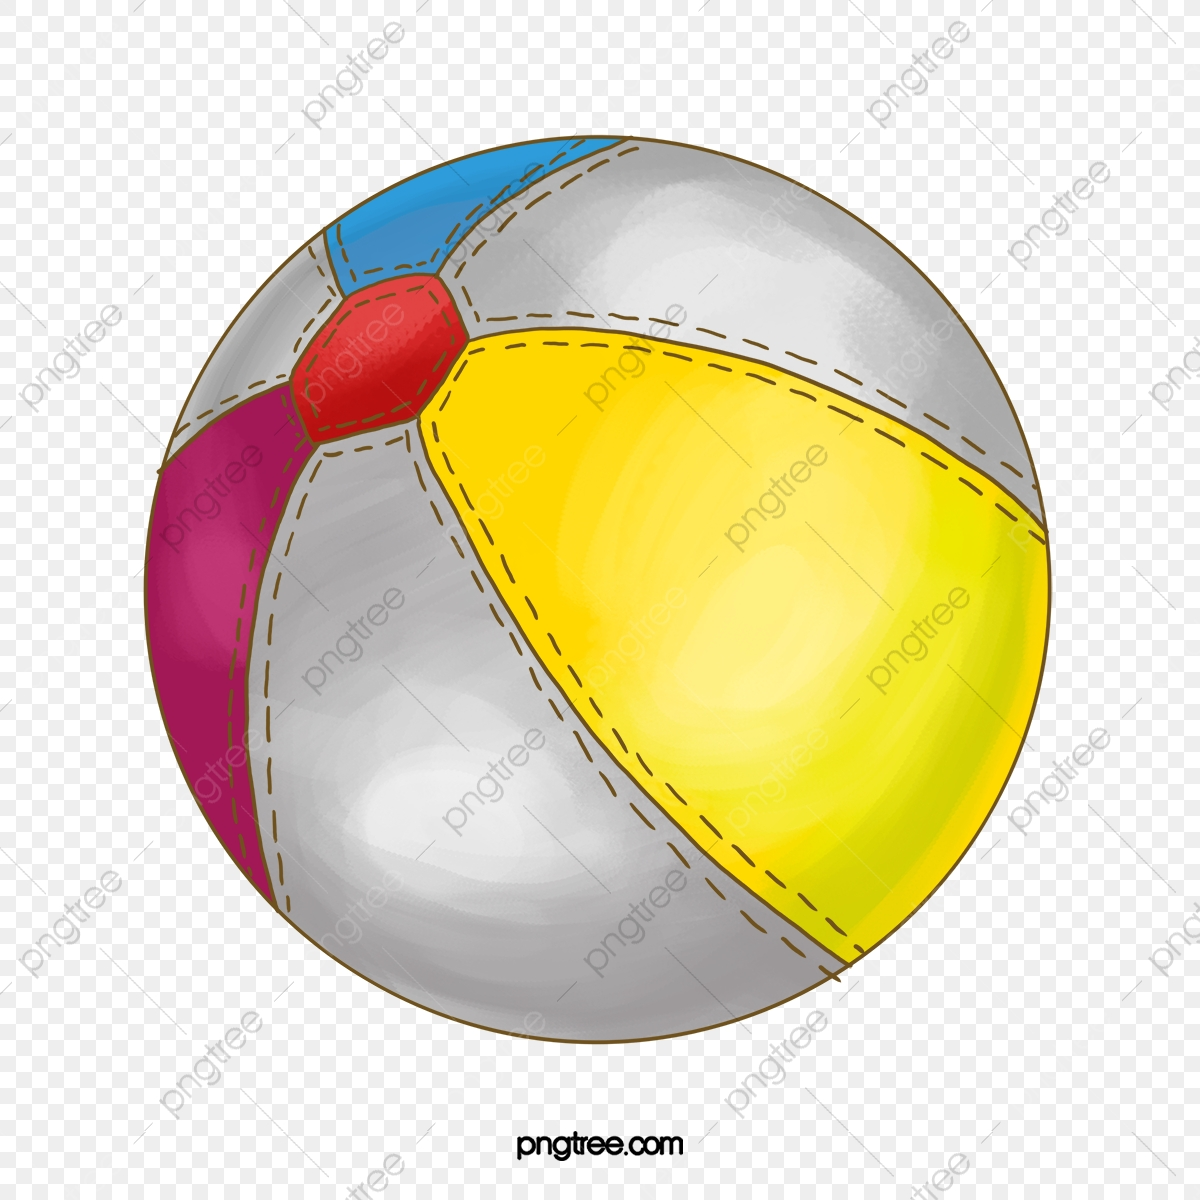 hight resolution of commercial use resource upgrade to premium plan and get license authorization upgradenow colorful beach ball